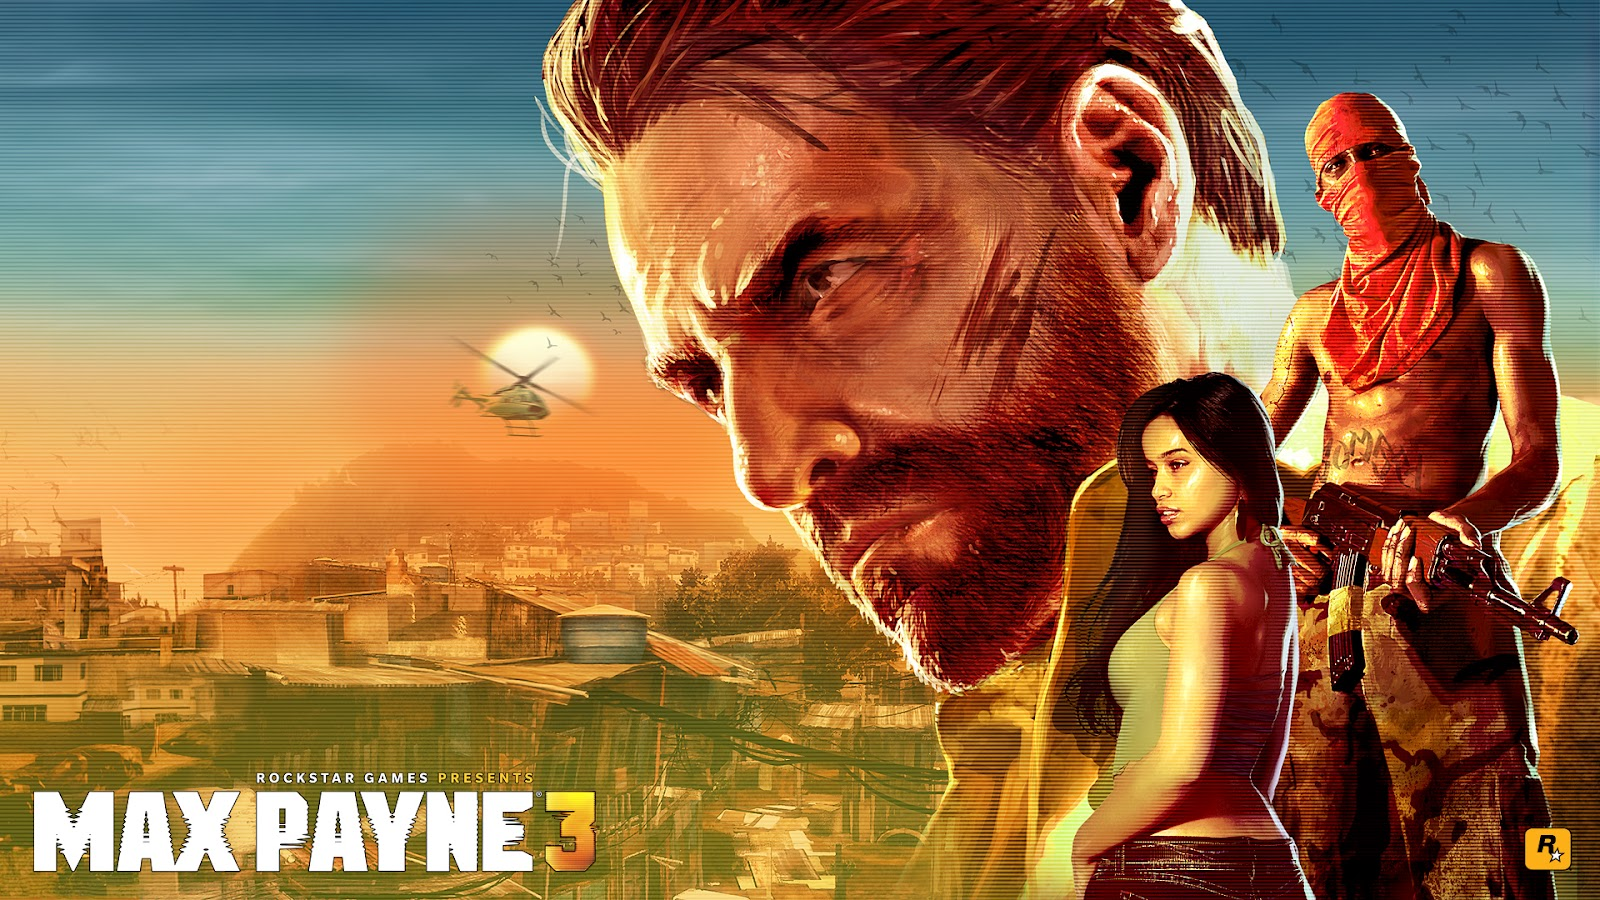 Due To The Success Of Games Such As Grand Theft Auto Iv Red Dead Redemption And La Noire Many Have Come To Expect The Rockstar Games Label To Exclusively